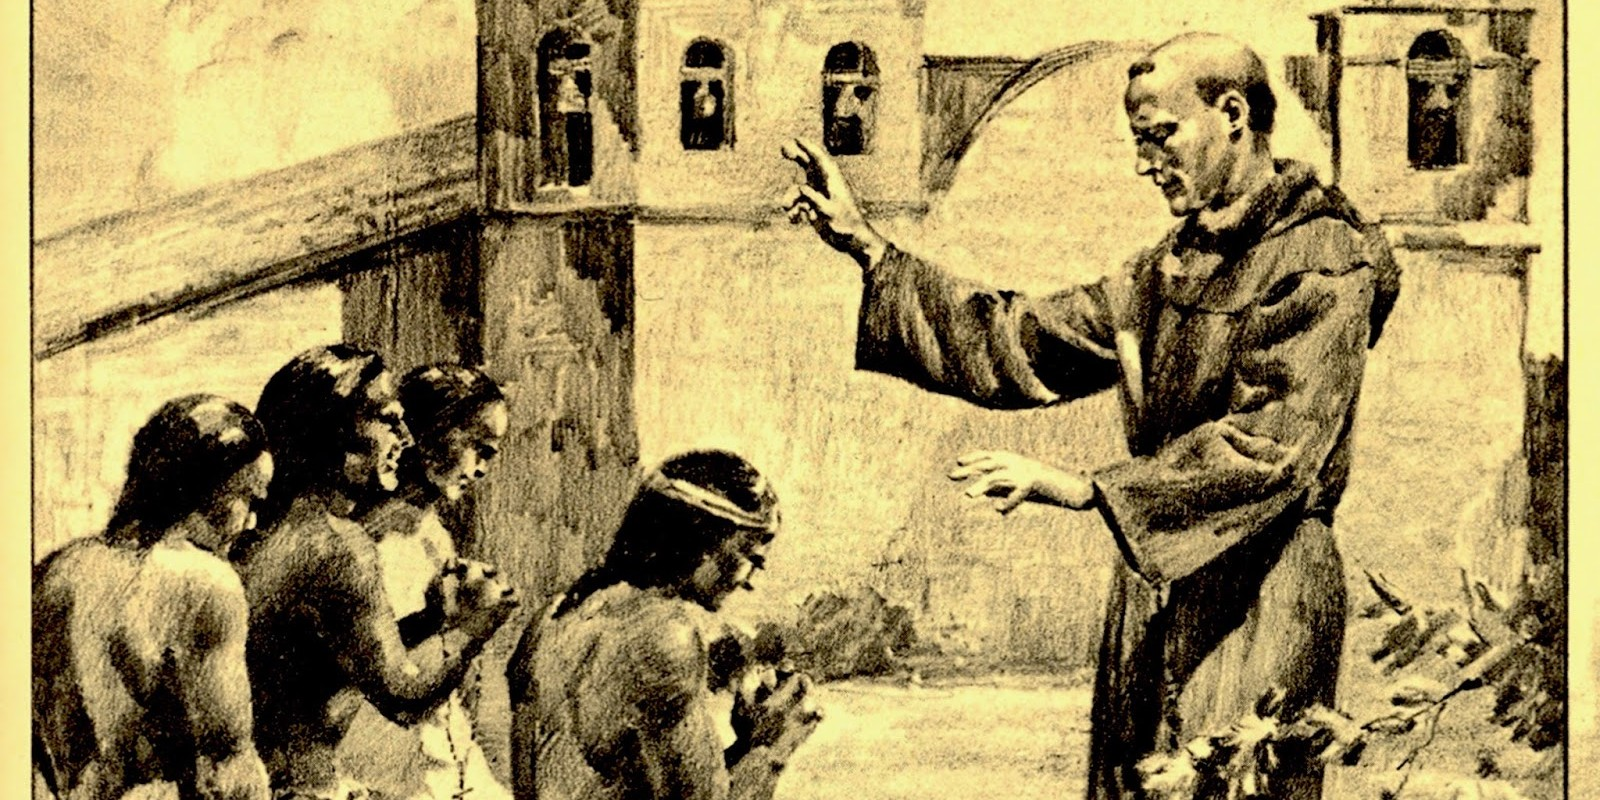 California Indians, Canonization of Junípero Serra, and Consequences of Colonialism